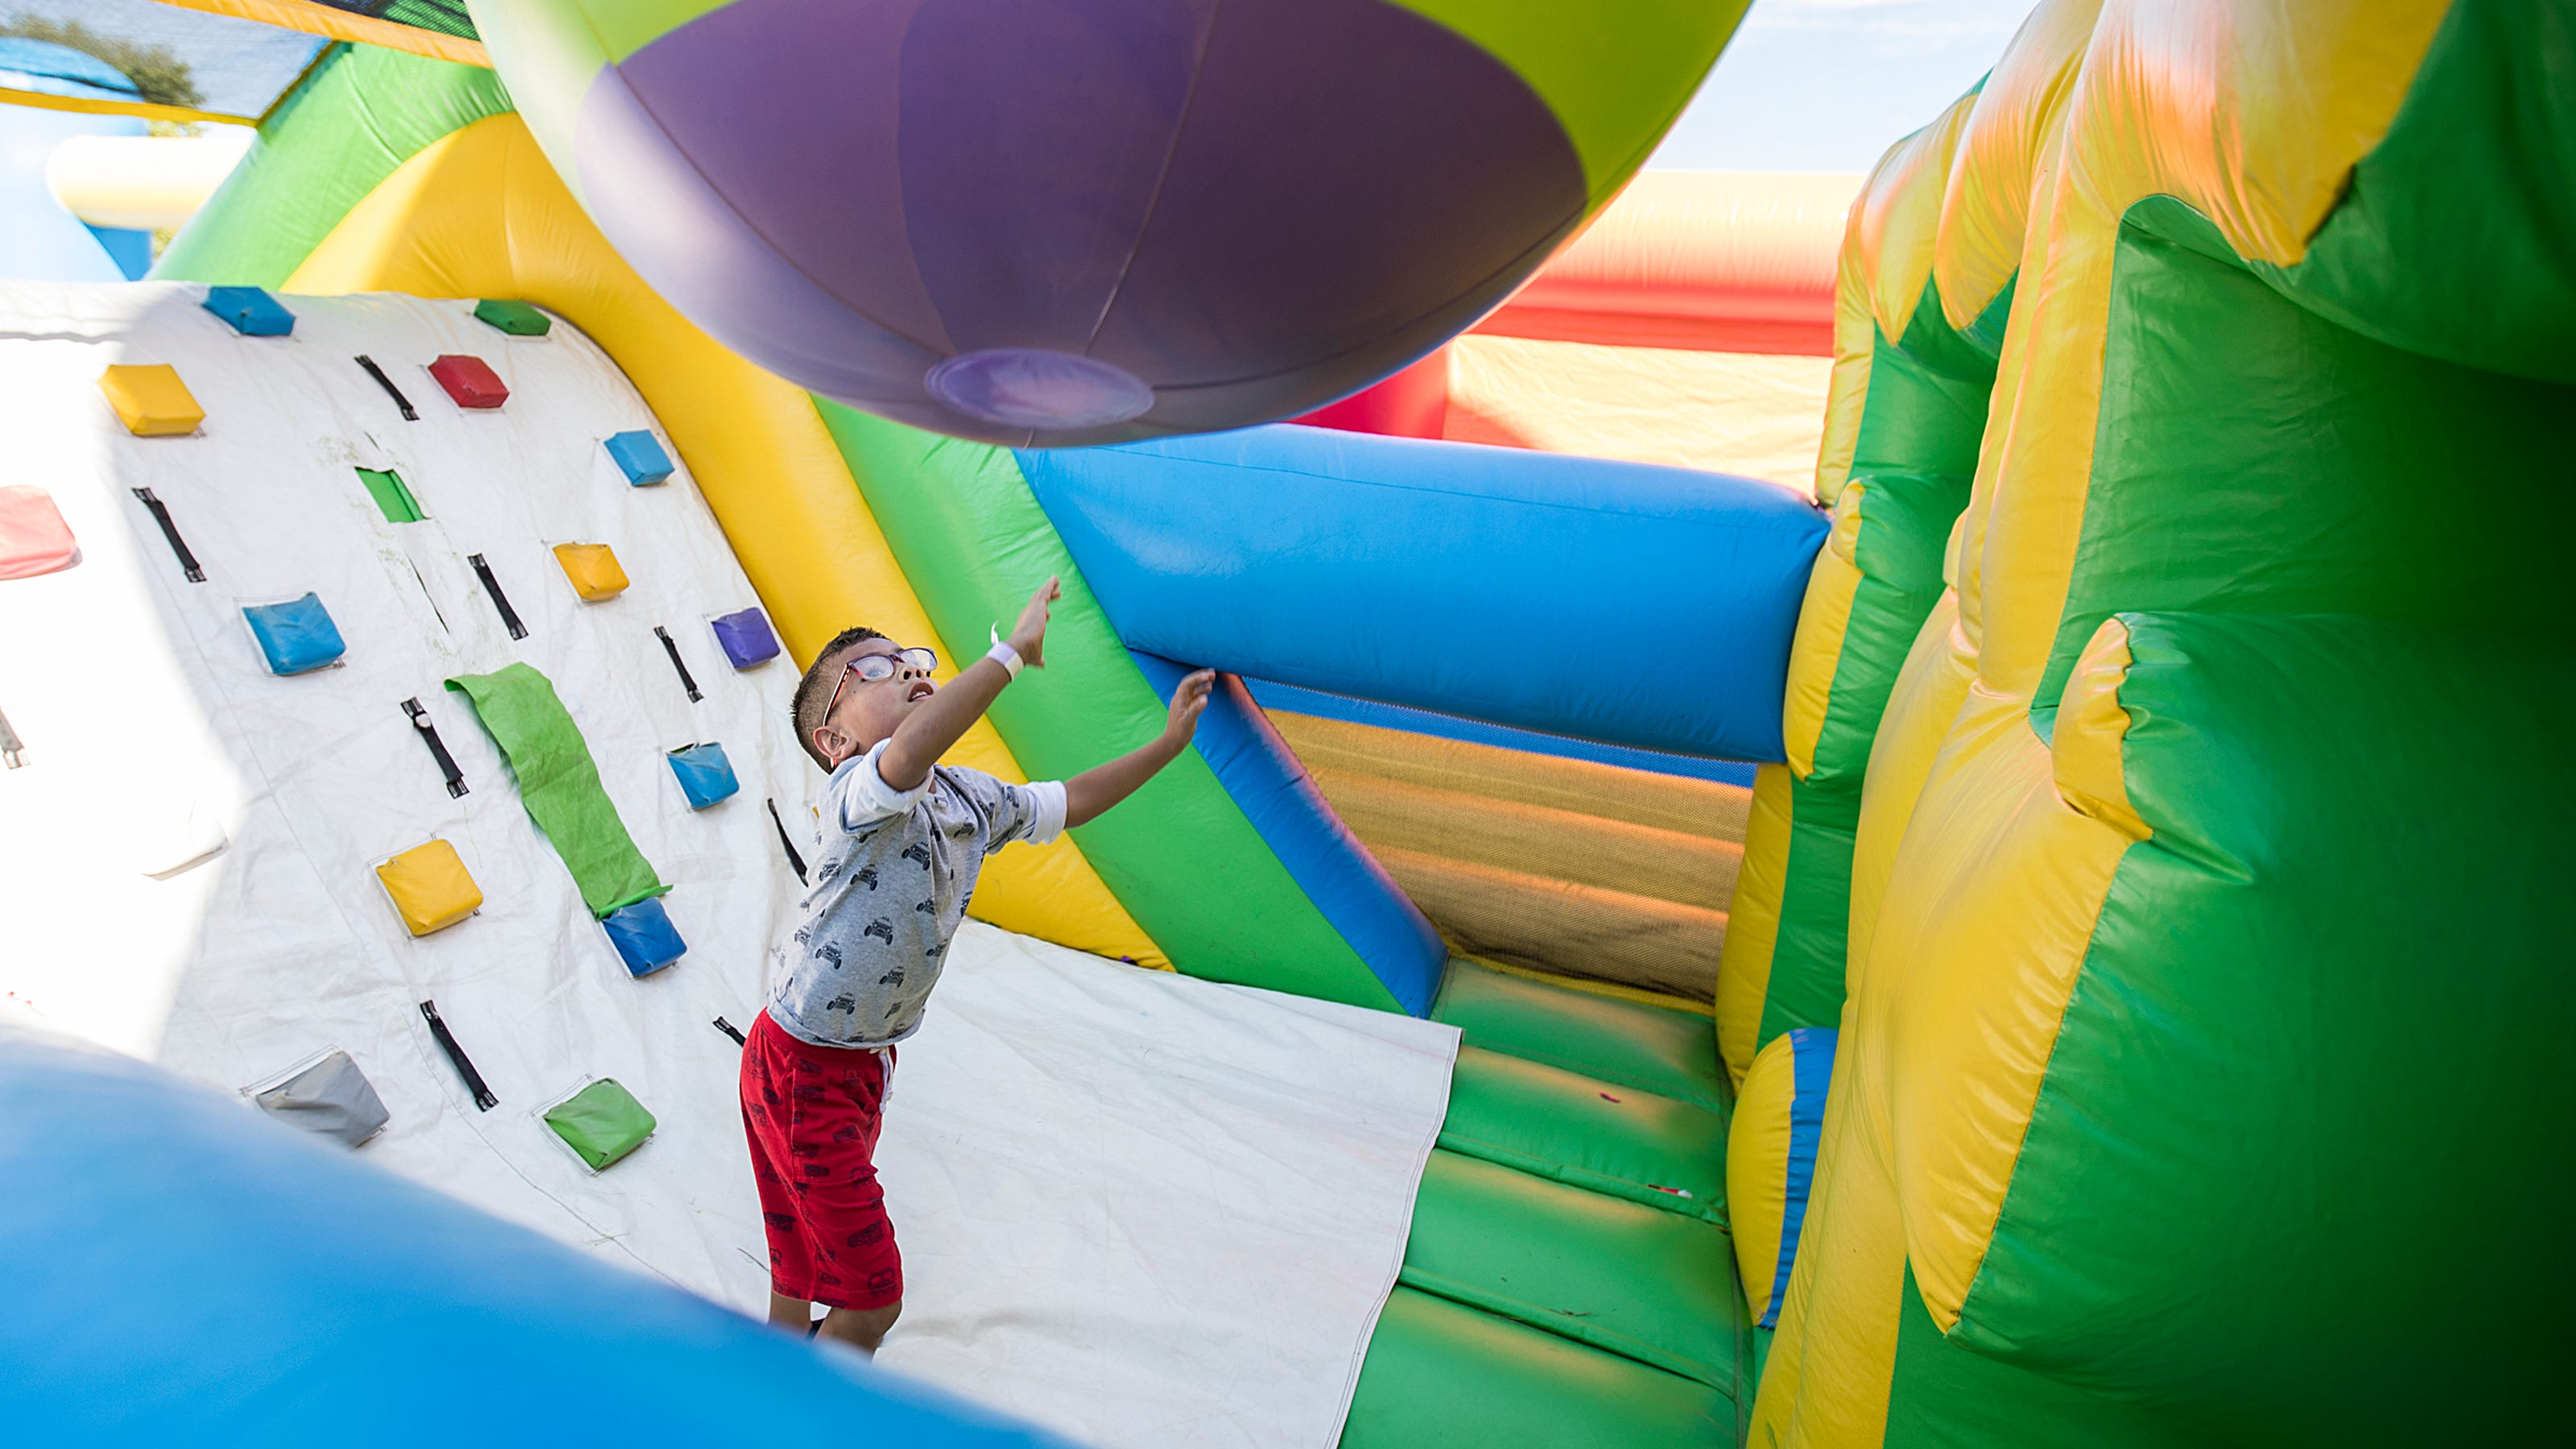 Tour the world's largest bounce house through the eyes of ...